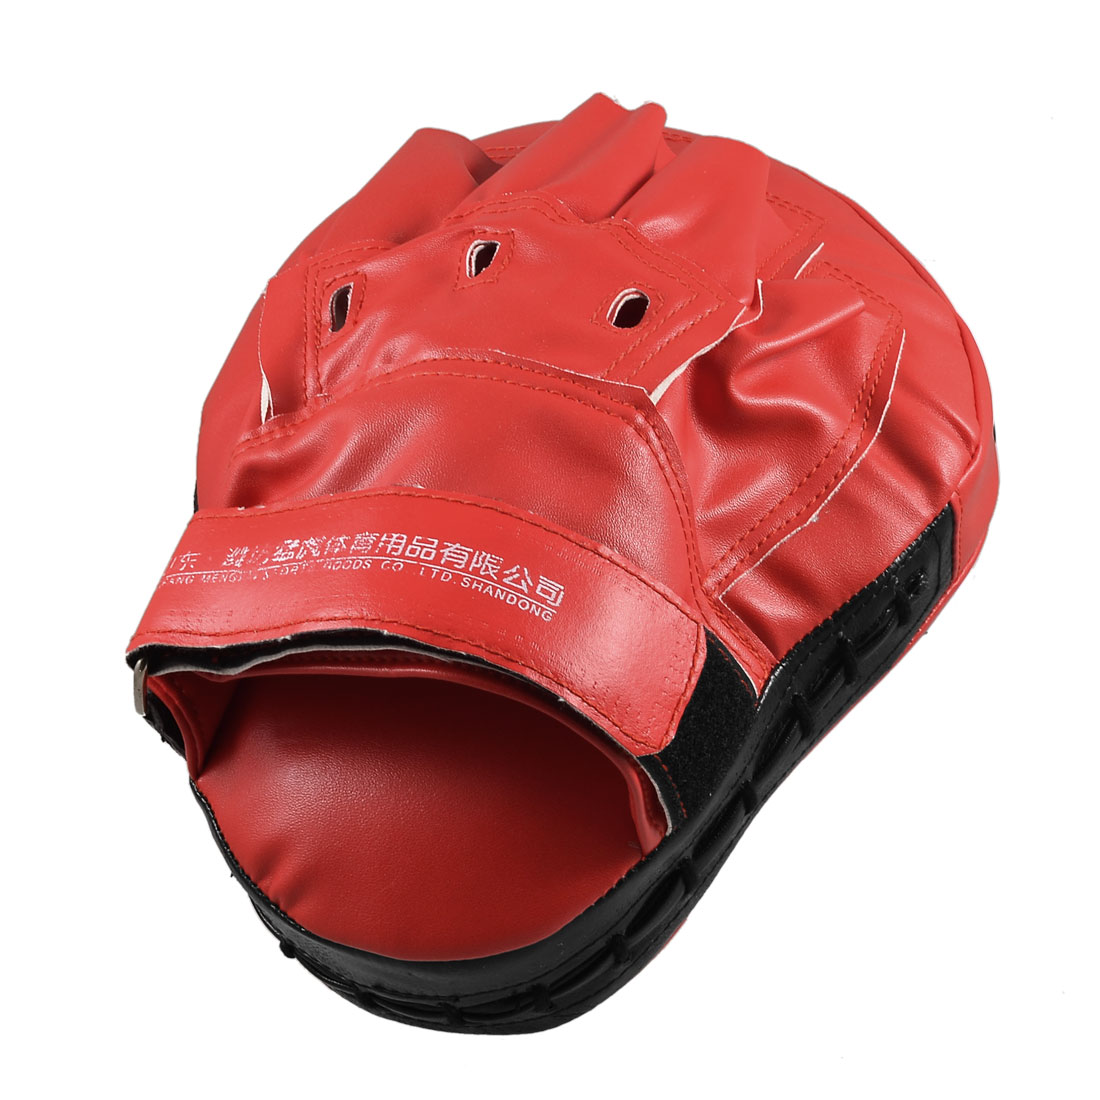 Fitness Boxing Red Faux Leather Hand Target Kickboxing Pad